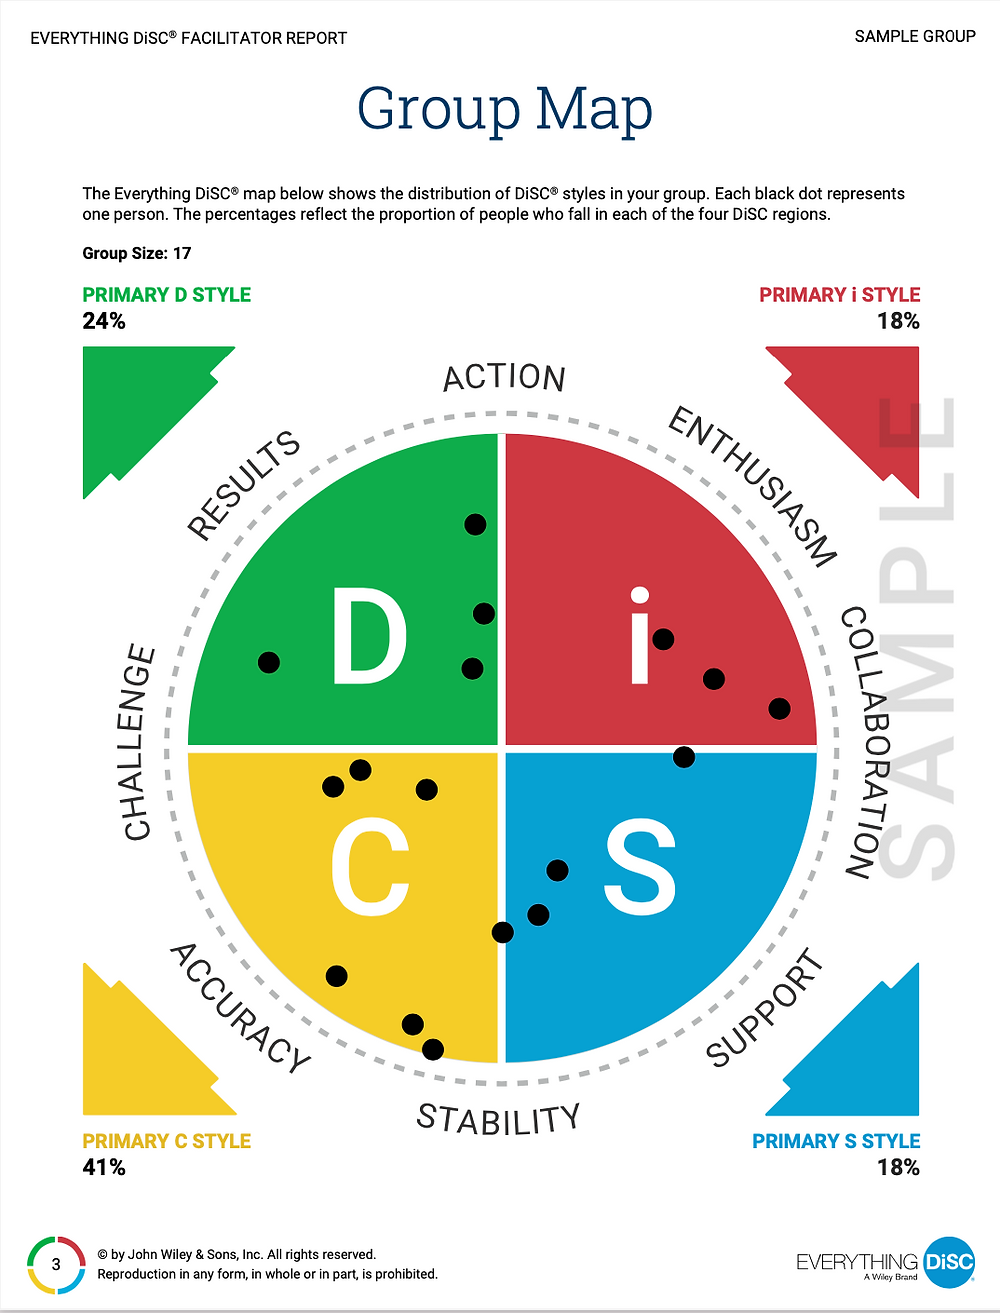 DiSC Group Map - Sample Page from Group Culture Report